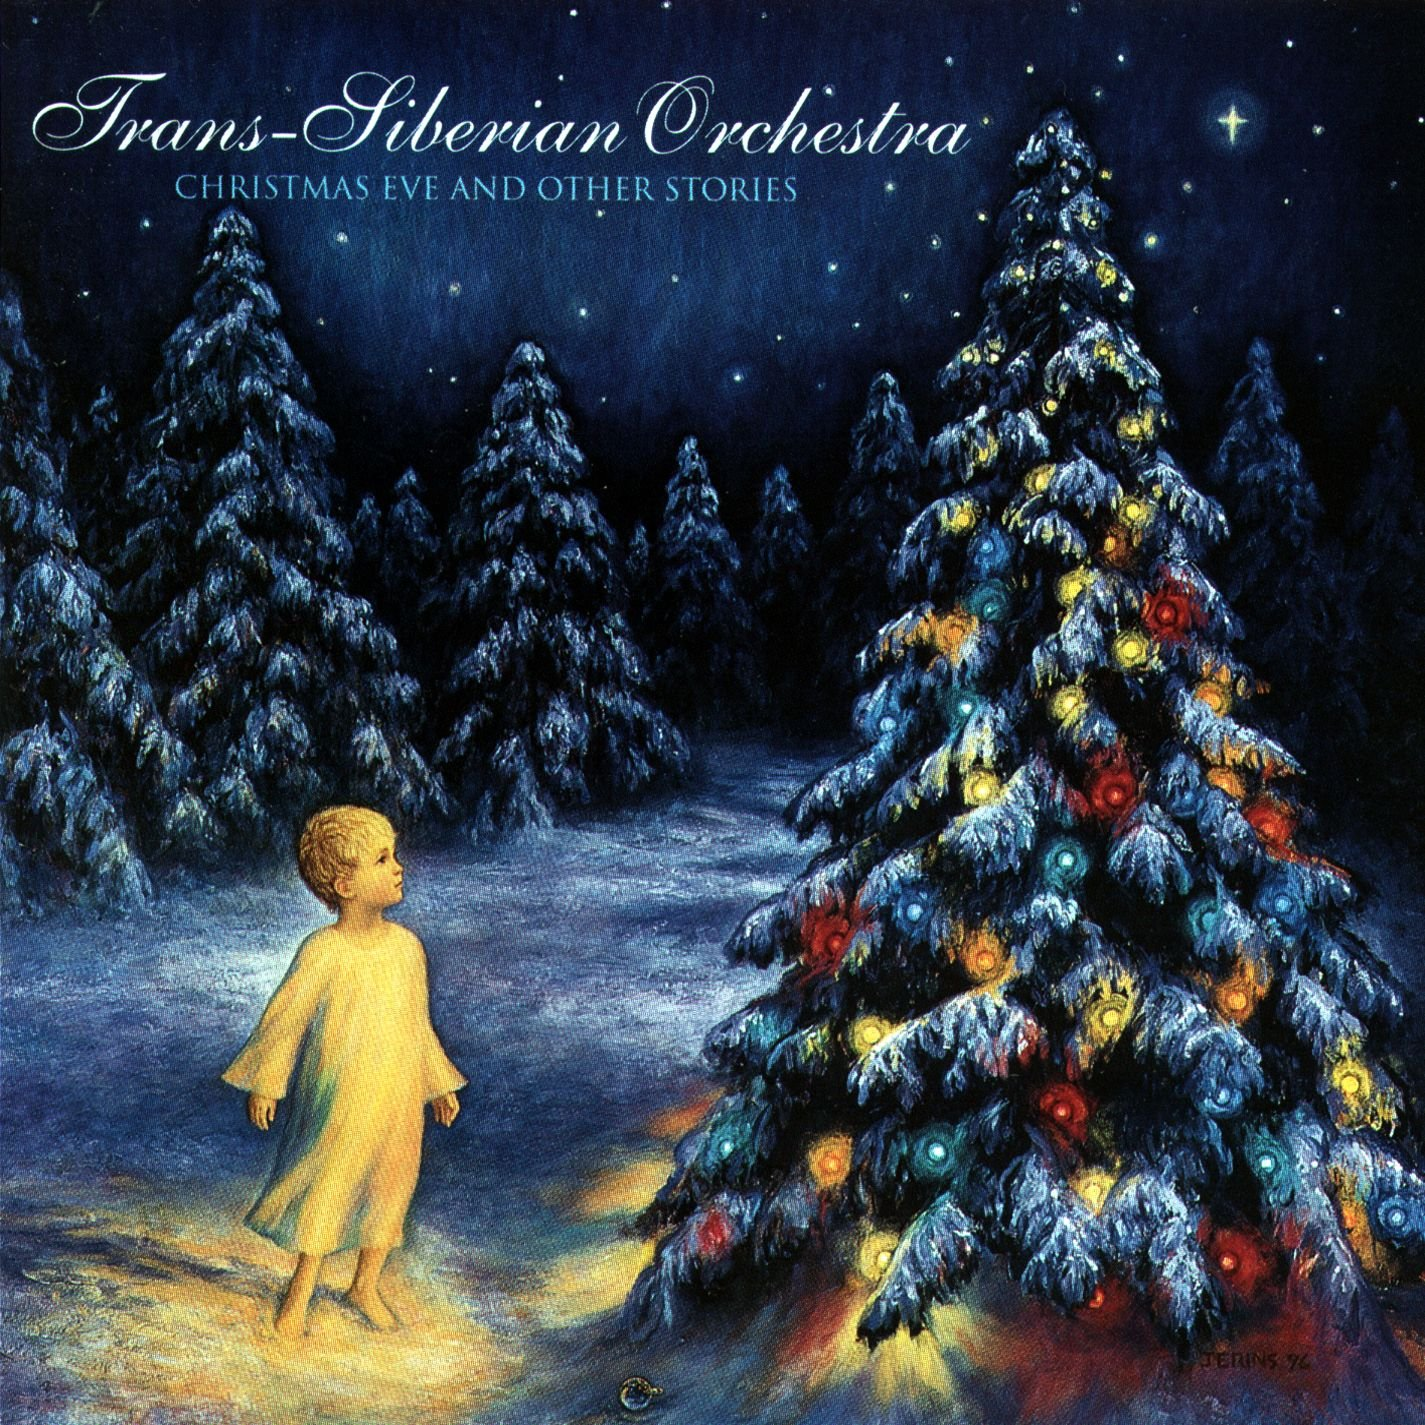 Transiberian Christmas Album 2020 Trans Siberian Orchestra   Christmas Eve and Other Stories